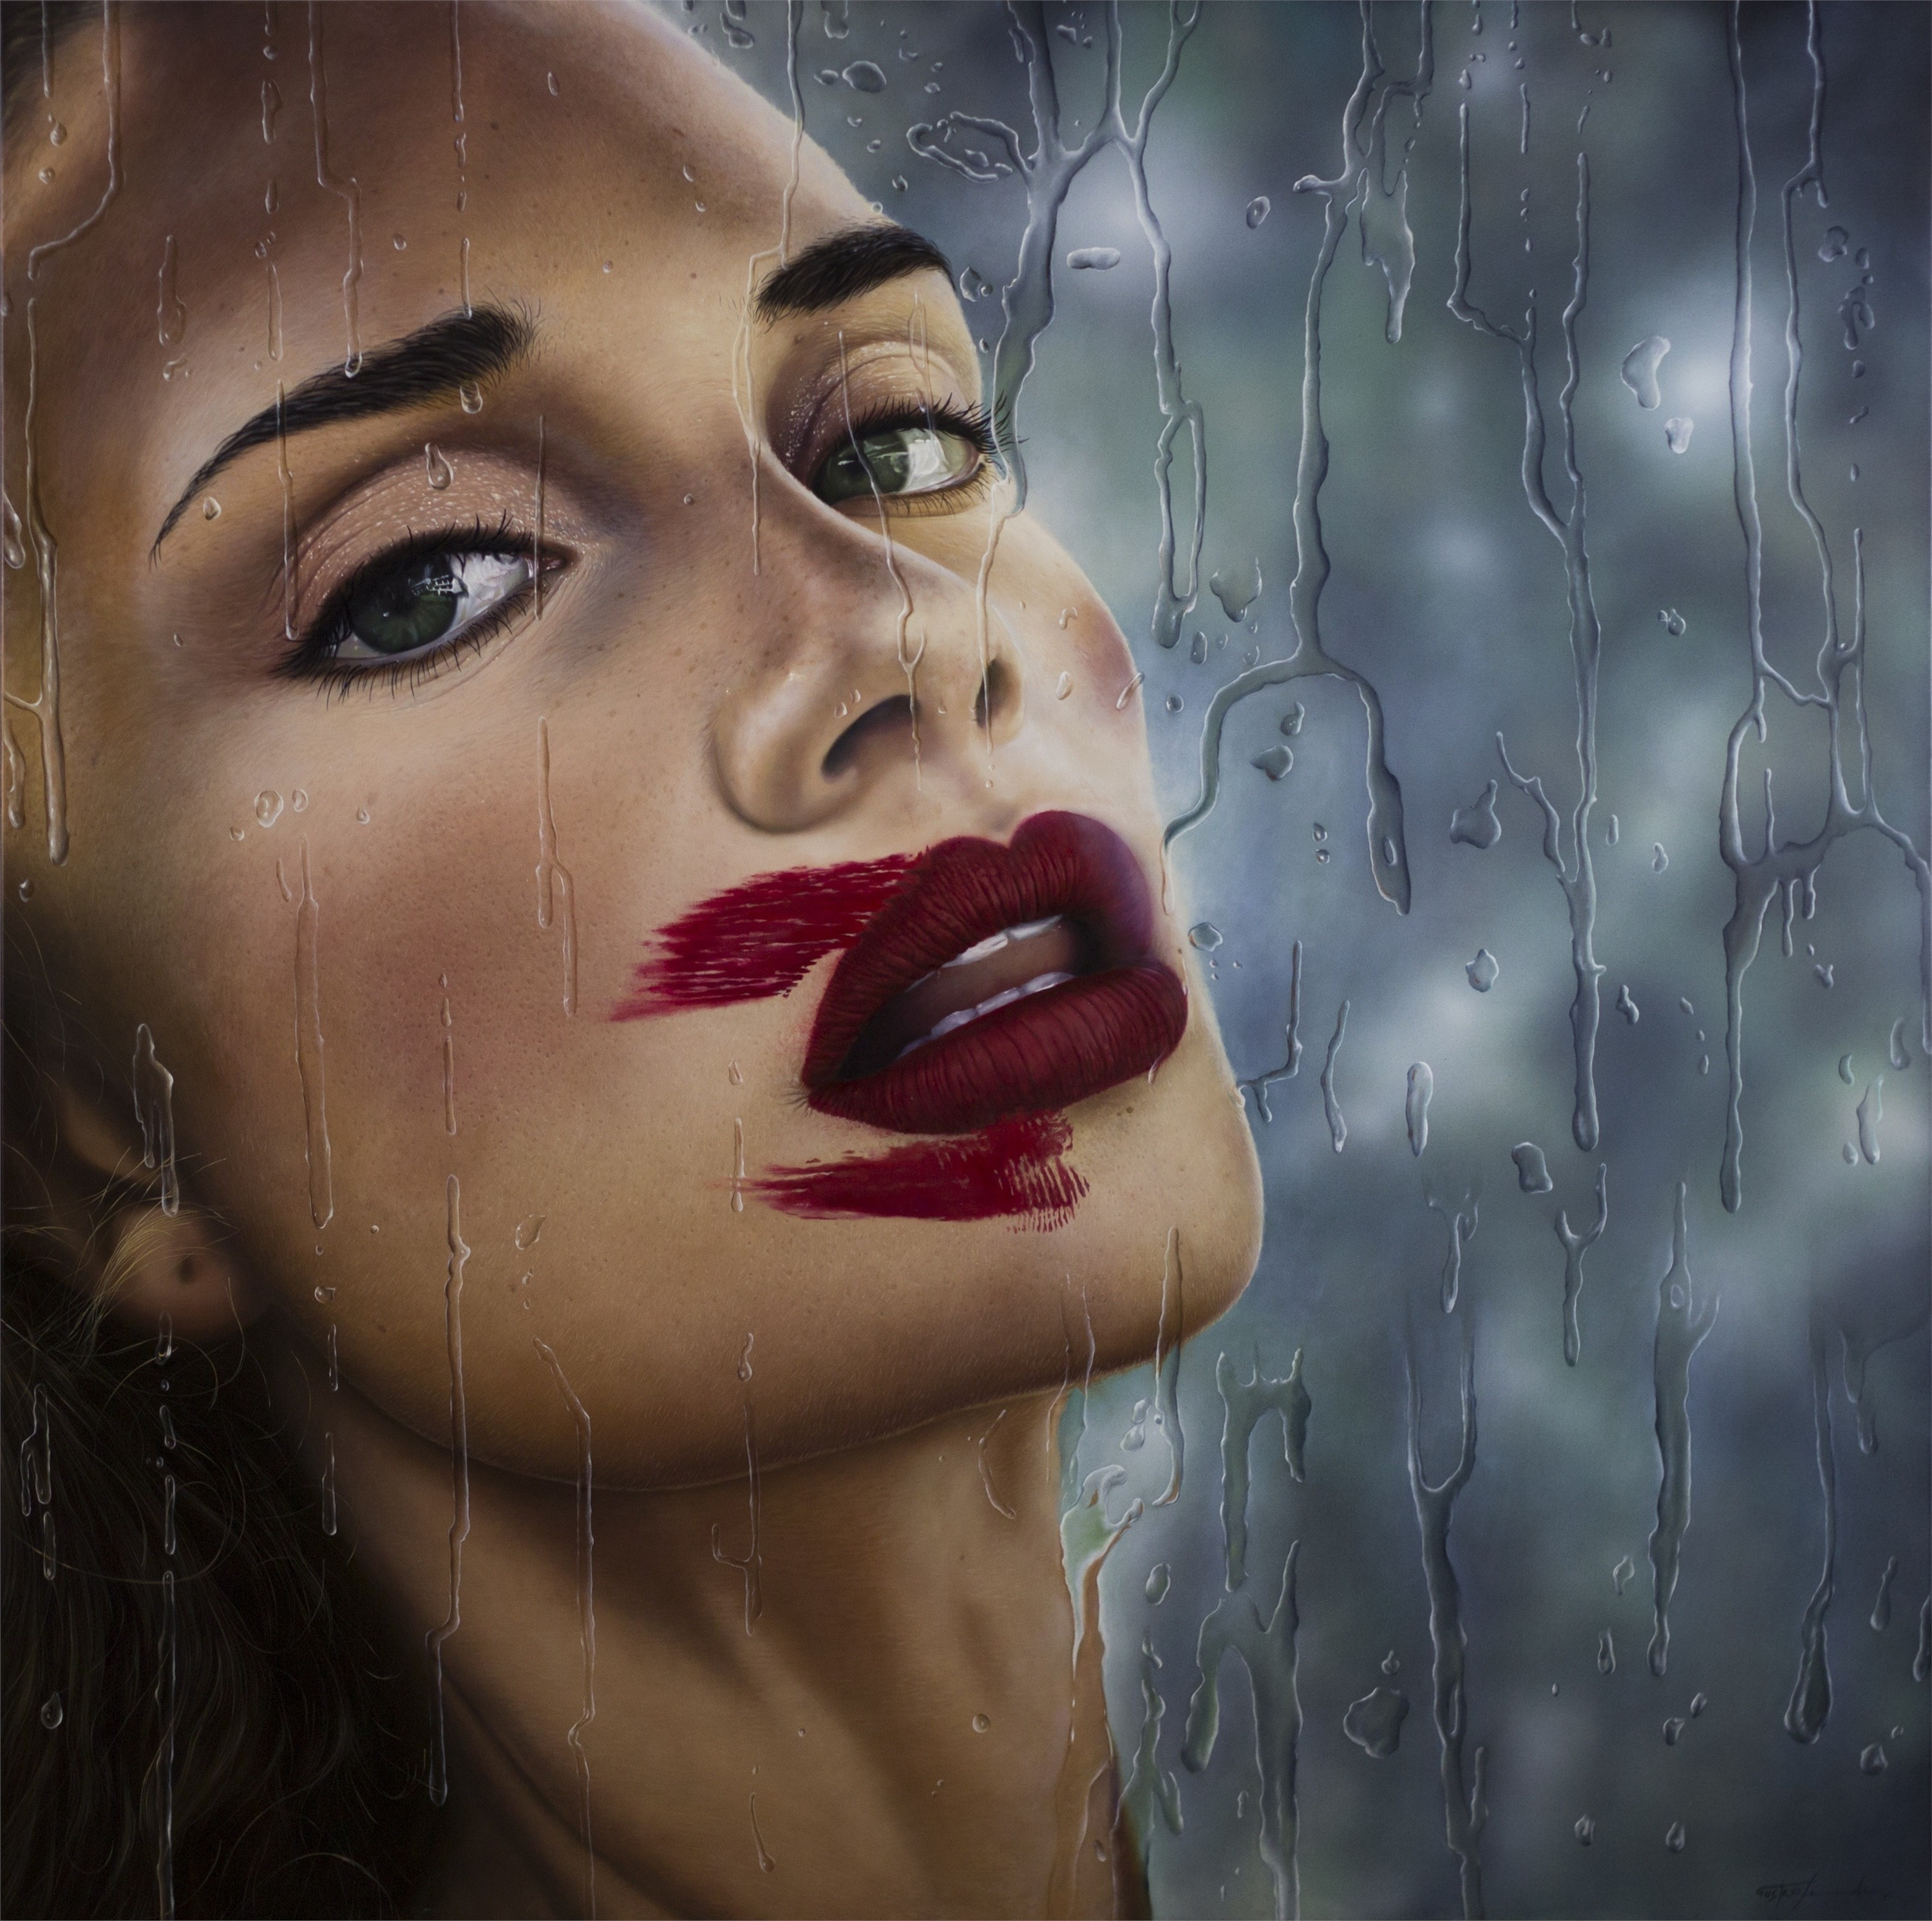 Cherry Lips, original Woman Oil Painting by Gustavo Fernandes